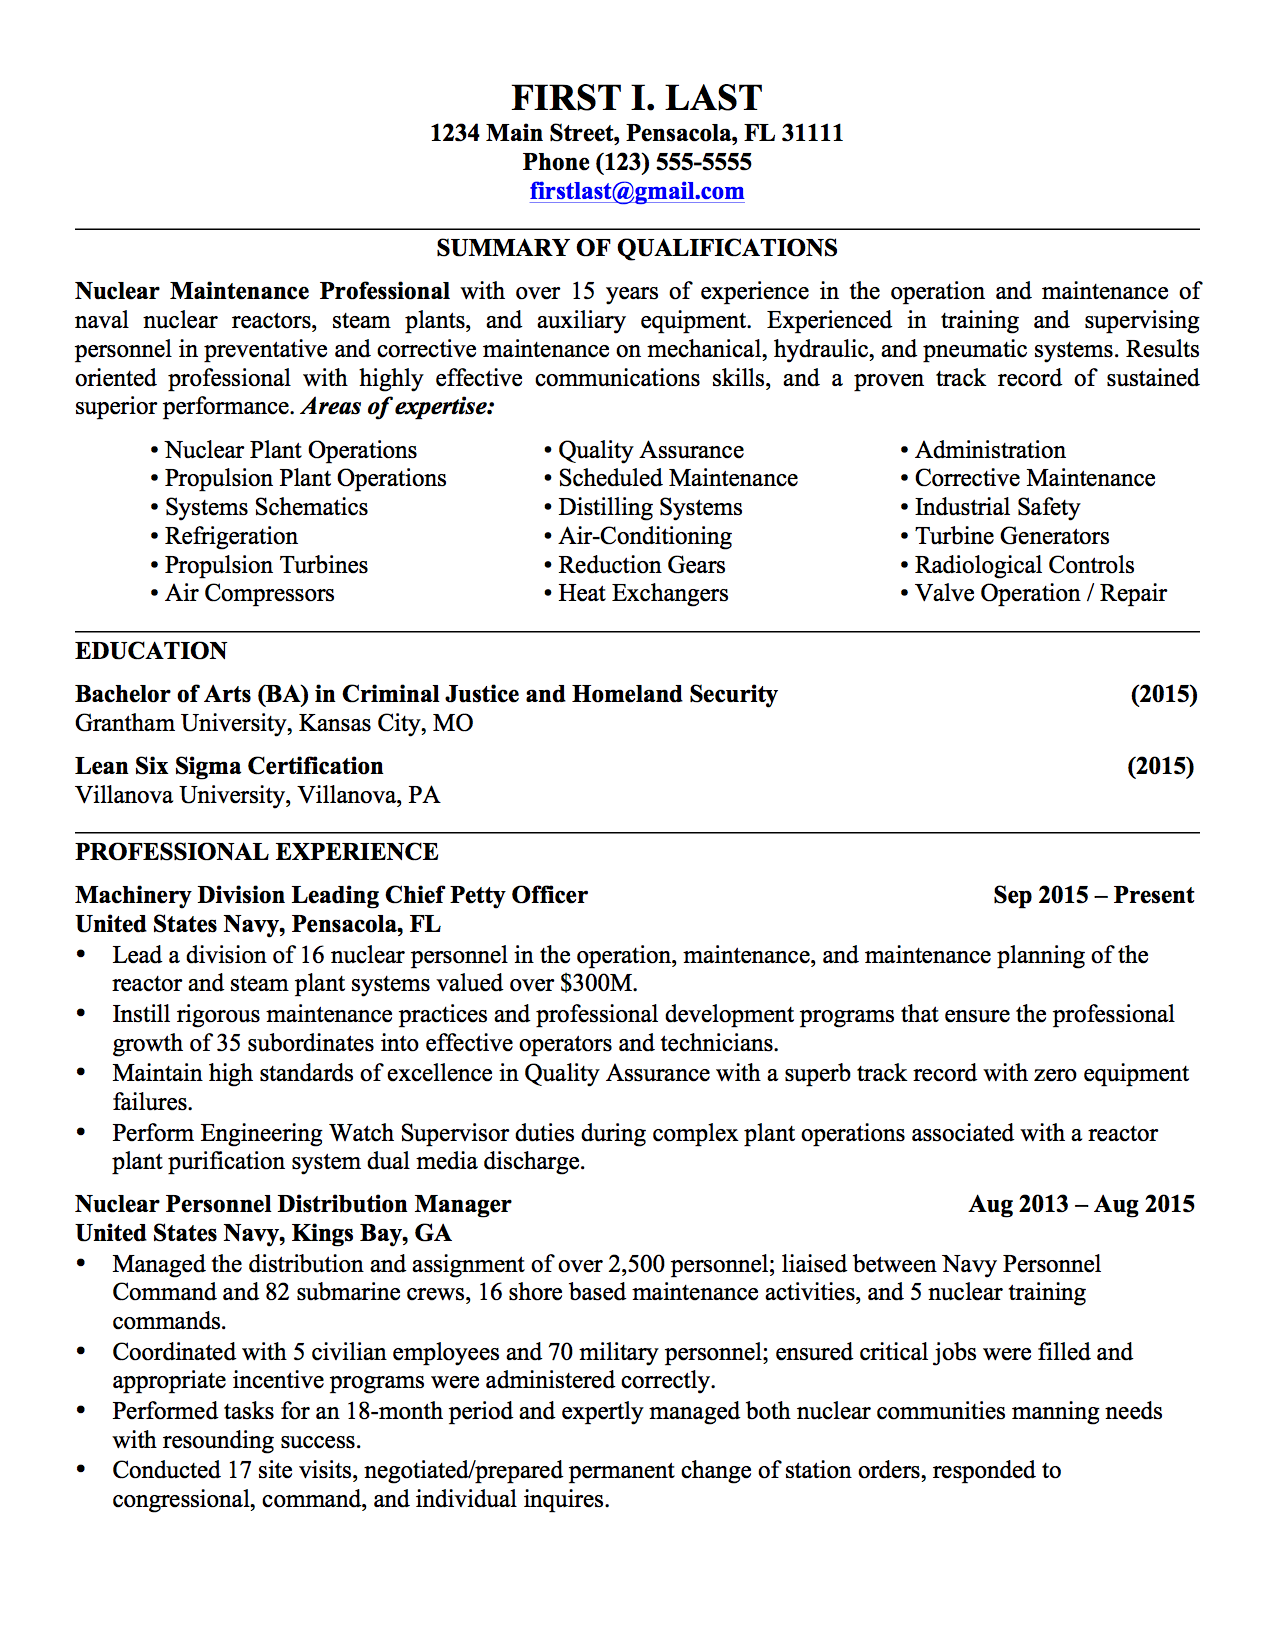 resume Resume Army military veteran resume examples ninja turtletechrepairs co examples